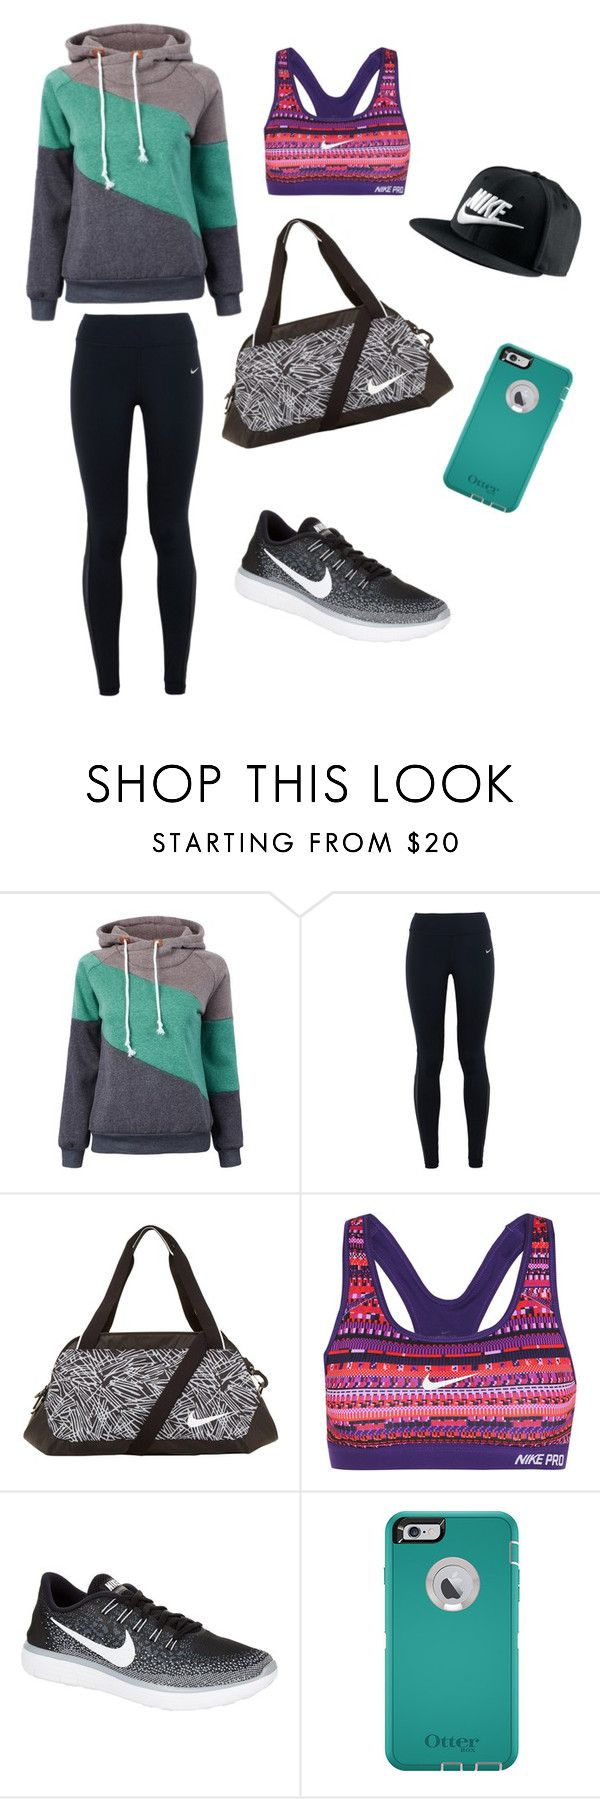 """""""Sporty look"""" by lexifrantti ❤ liked on Polyvore featuring NIKE, women's clothing, women's fashion, women, female, woman, misses and juniors"""